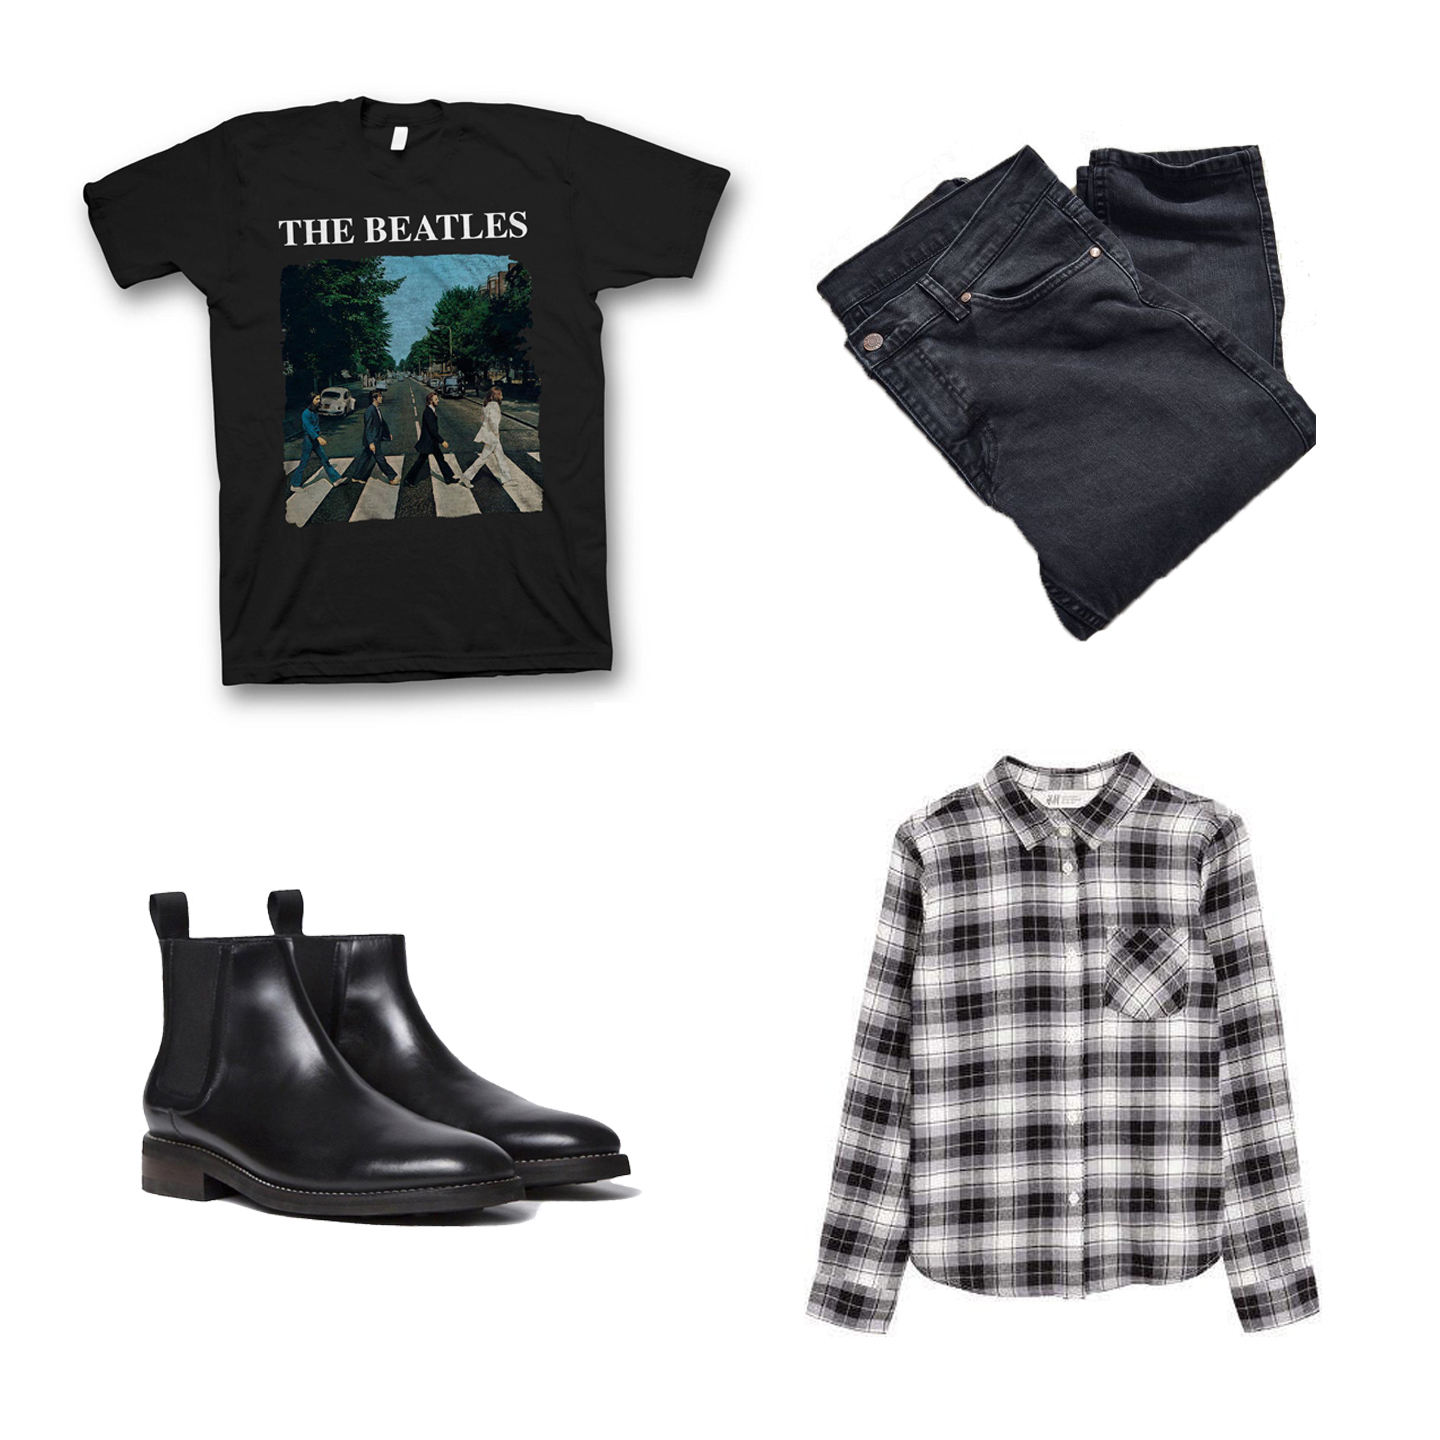 H&M Generous Fit  Flannel  $14, Thursday Boot Co.  Duke Boots  $199 , Dr. Denim Clark Vintage Black  Slim Jean  $85